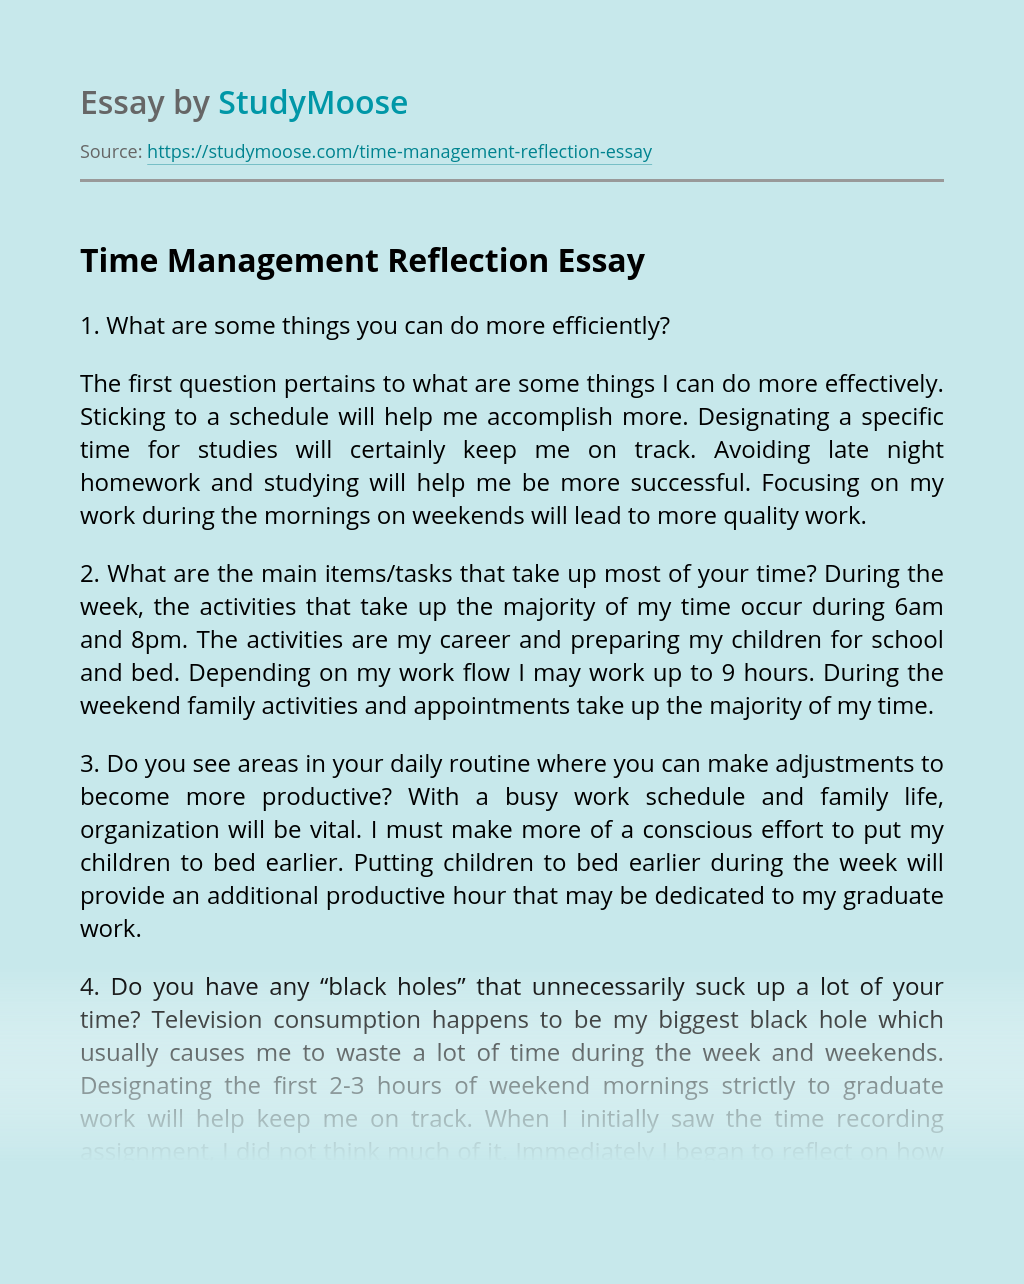 Time Management Reflection